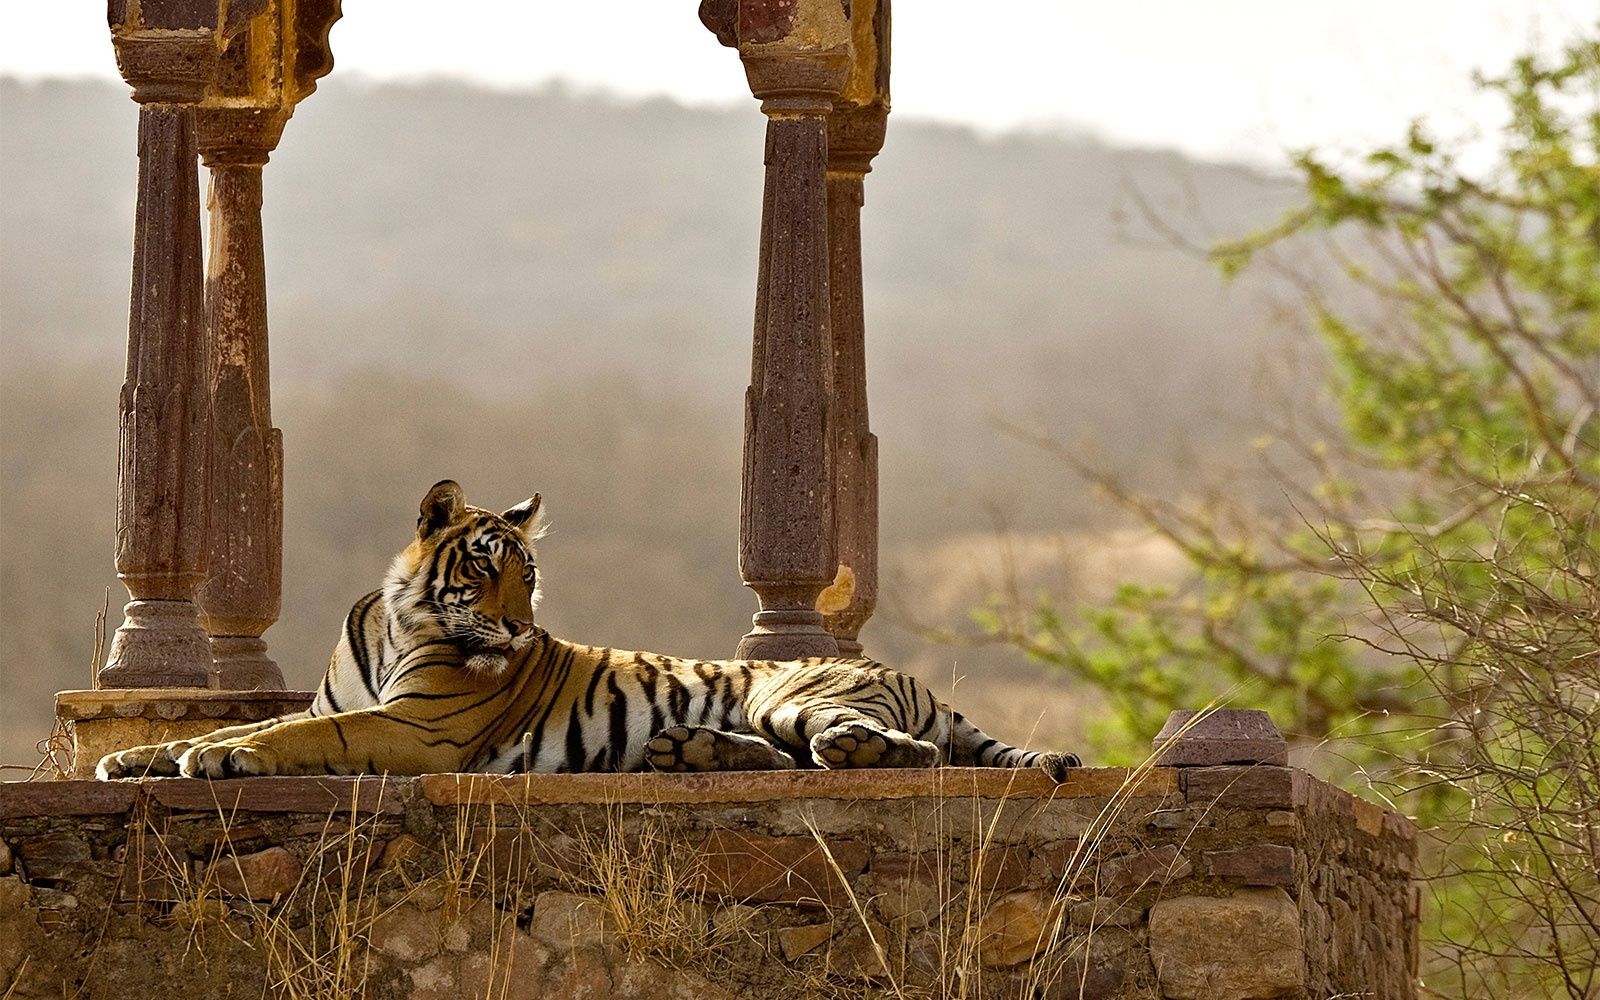 Royal Treatment in Rajasthan